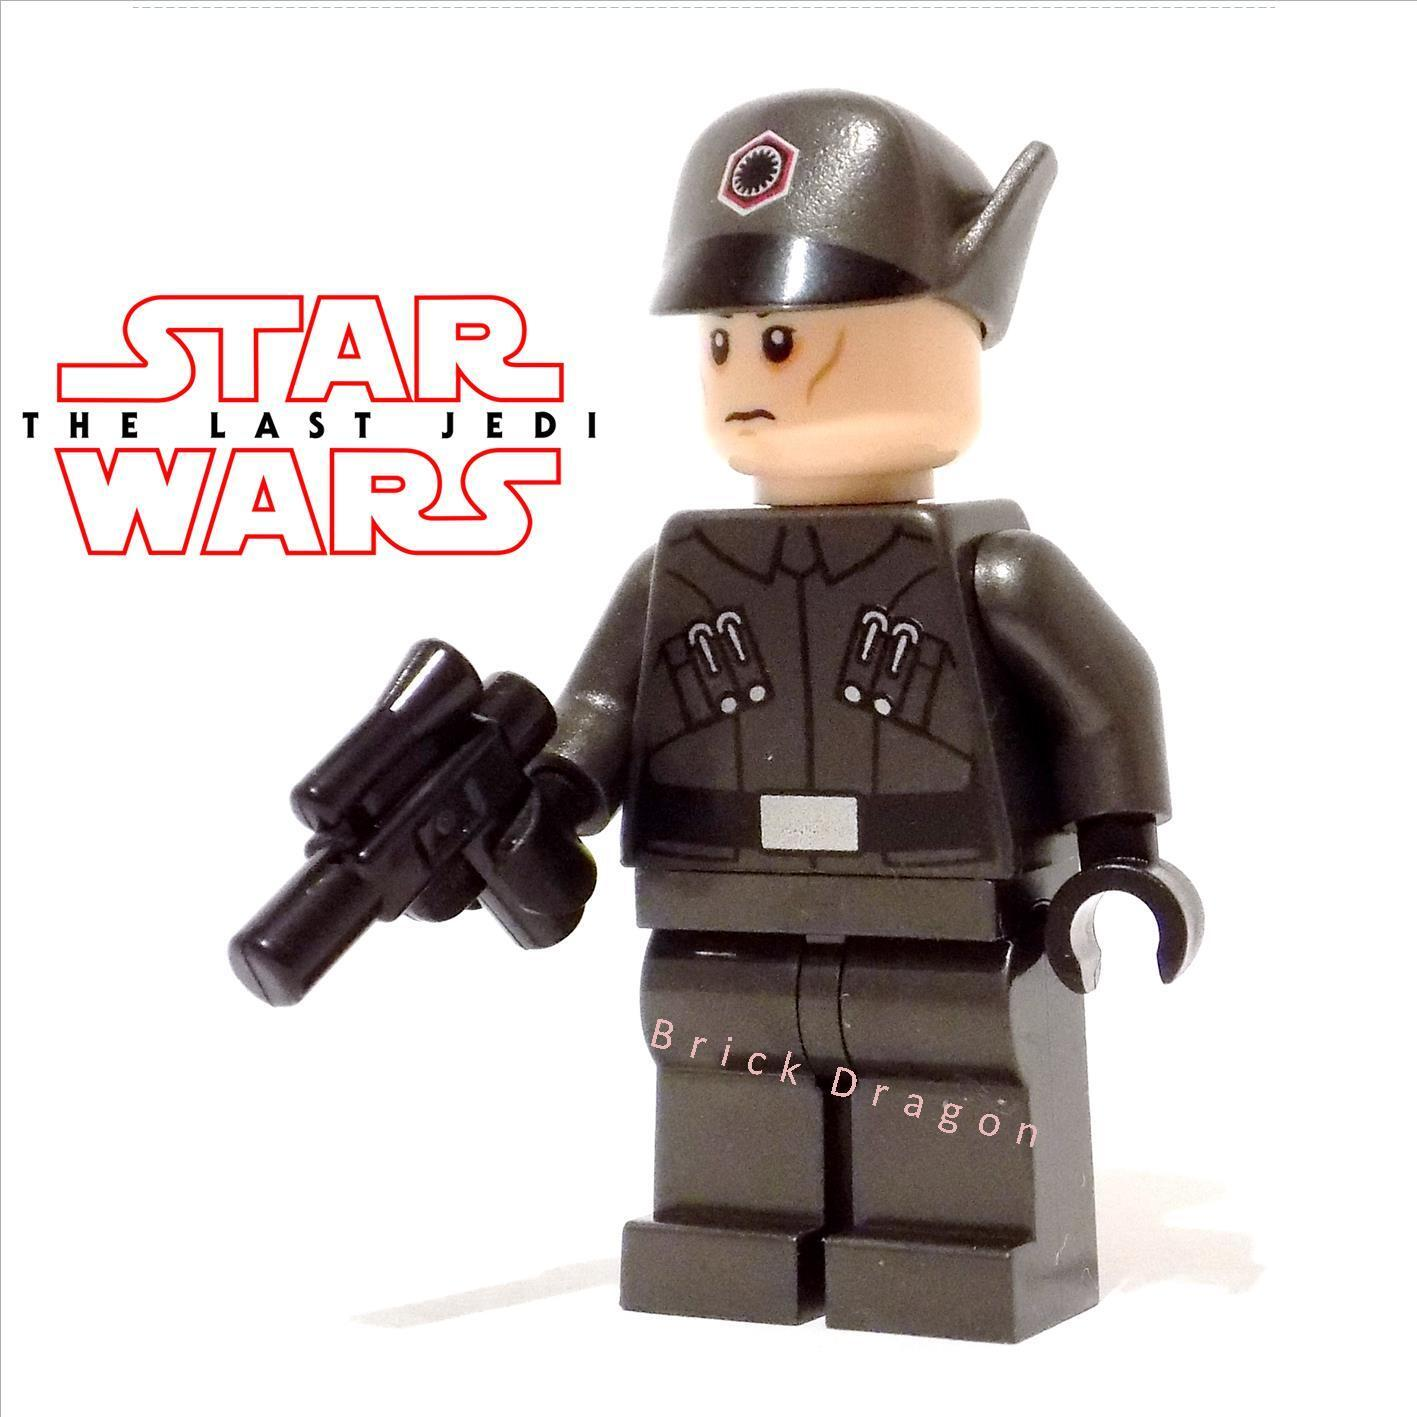 Lego Star Wars - The Last Jedi - First Order Officer  NEW from set 75190